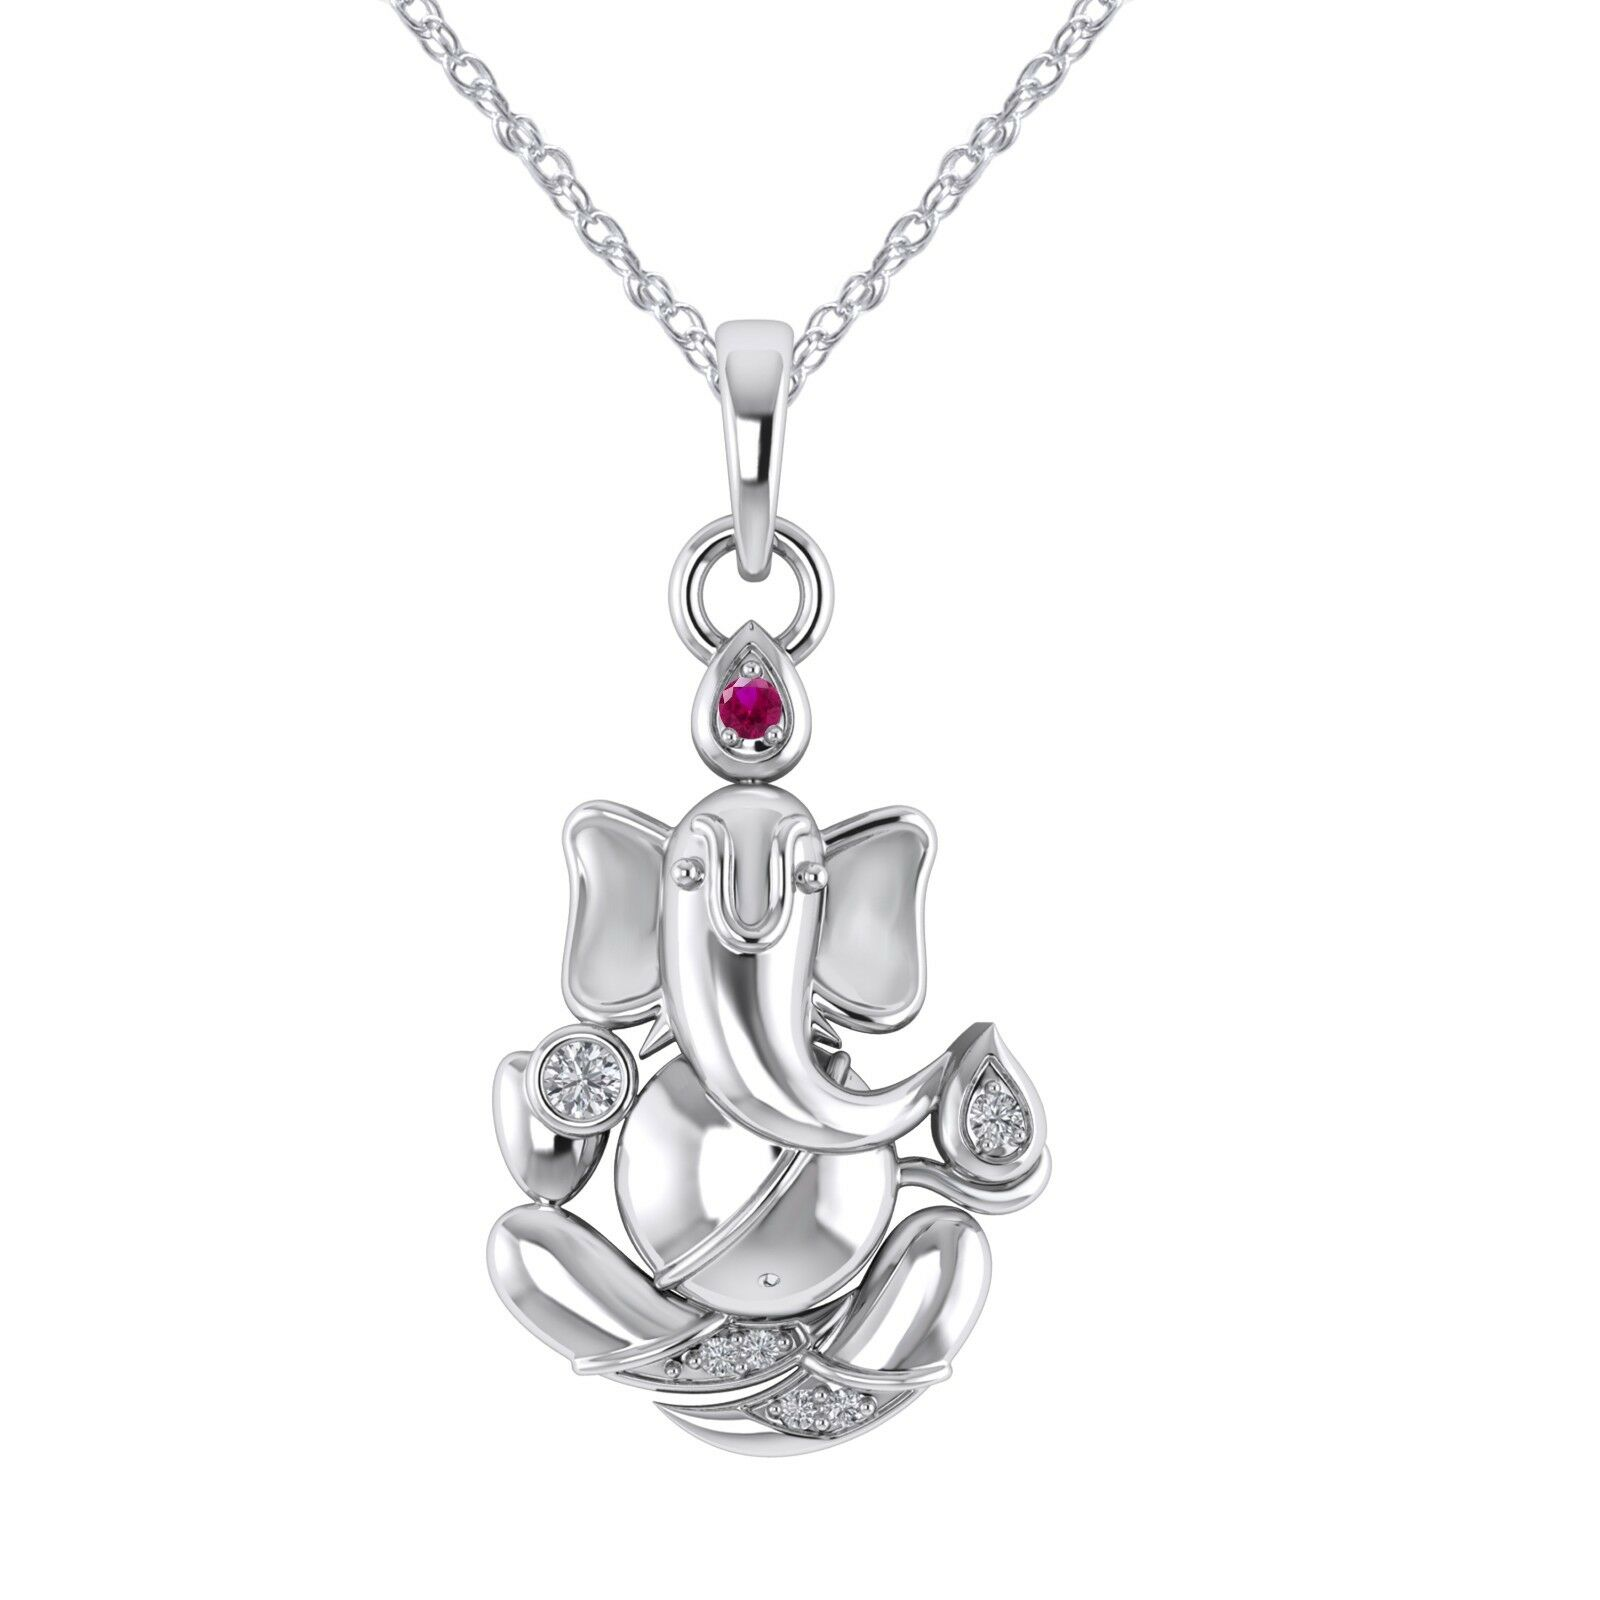 0.07 Ctw Genuine Diamond & Ruby Lord Ganesh Pendant 14K White gold Finish